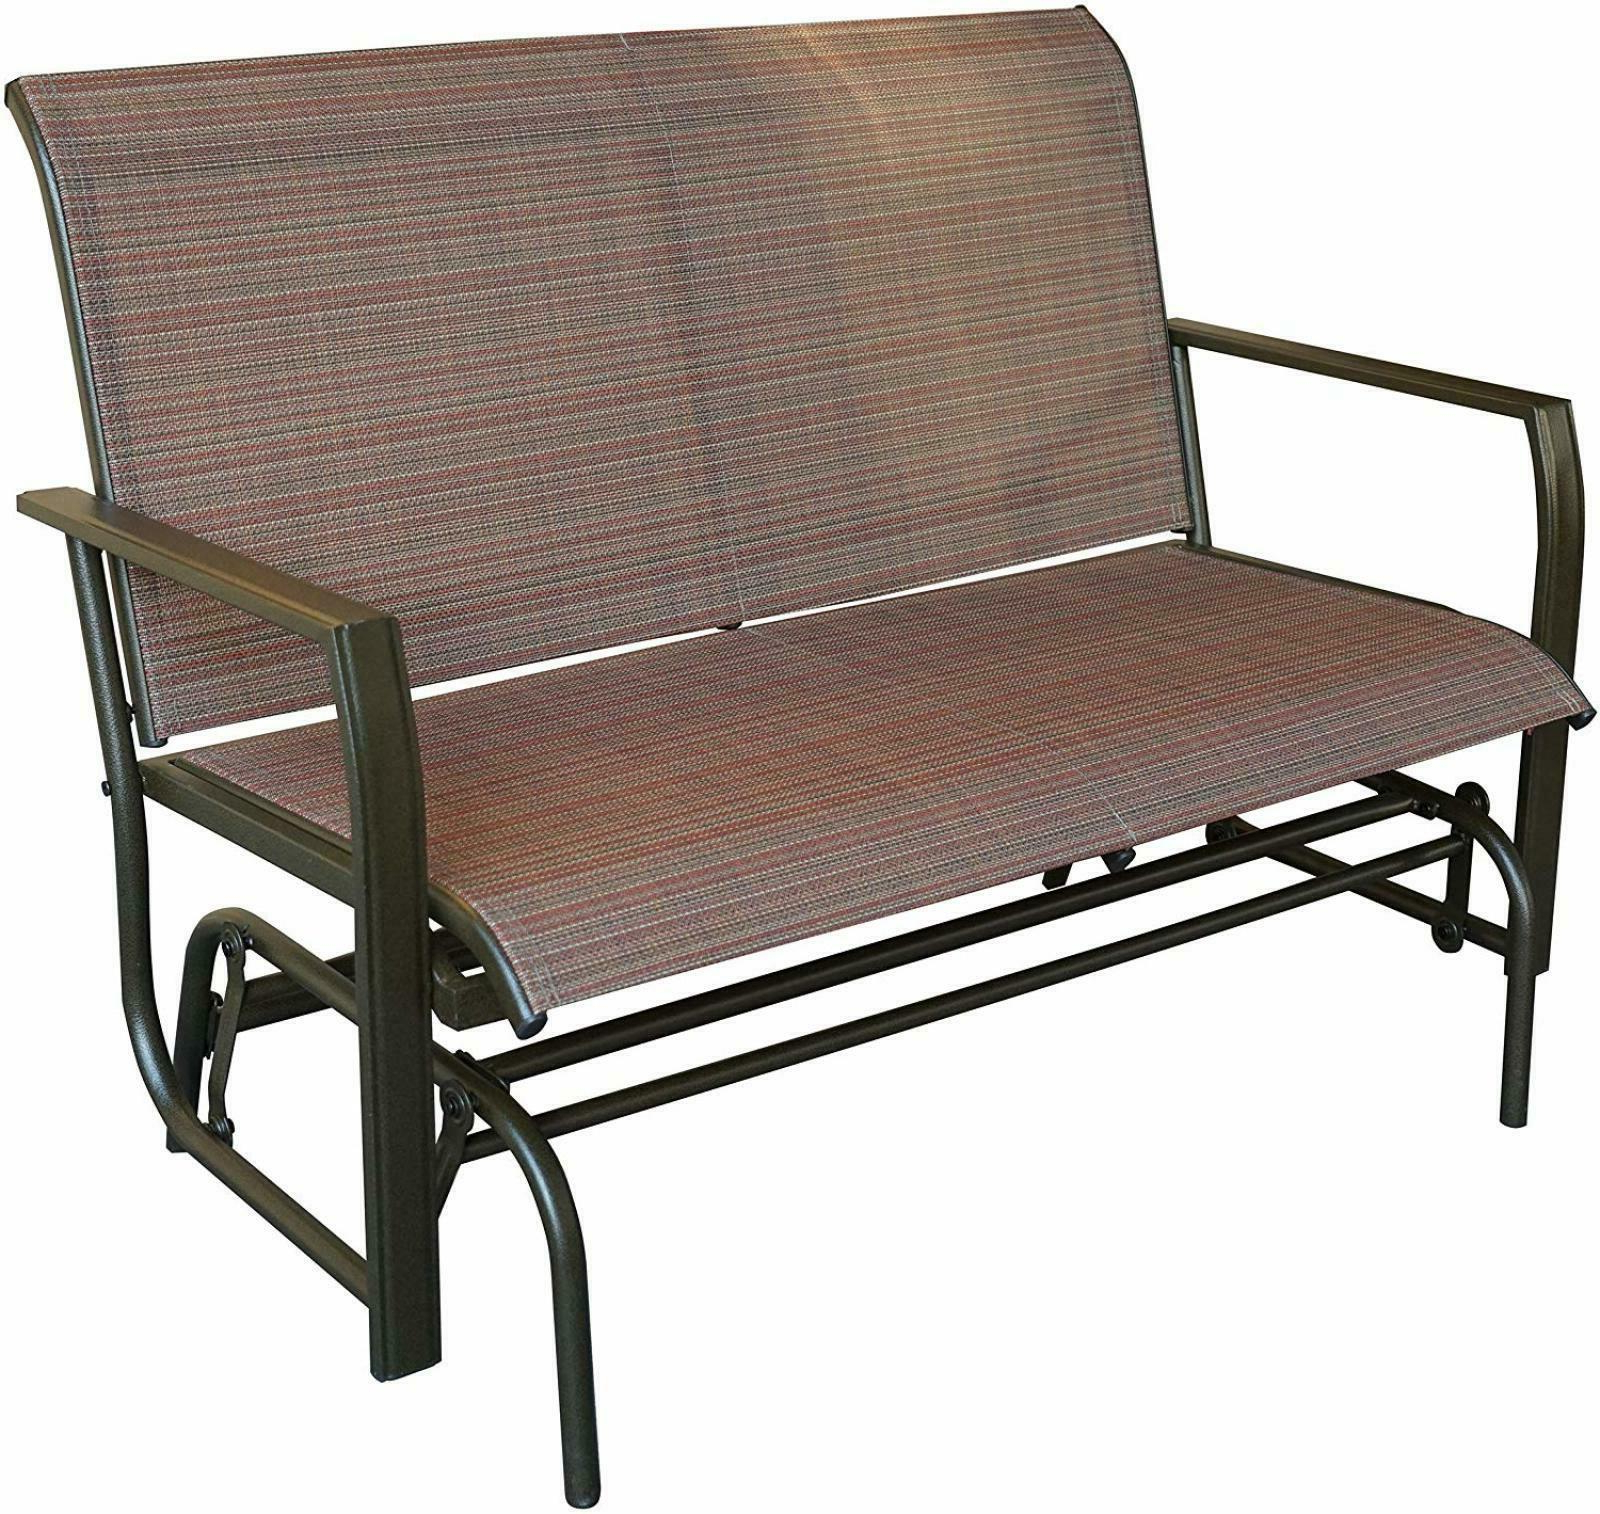 Well Known Love Seat Swing Bench For Patio Textile And Sturdy Frame Glider Rocker Tan Brown Pertaining To Rocking Love Seats Glider Swing Benches With Sturdy Frame (View 7 of 25)